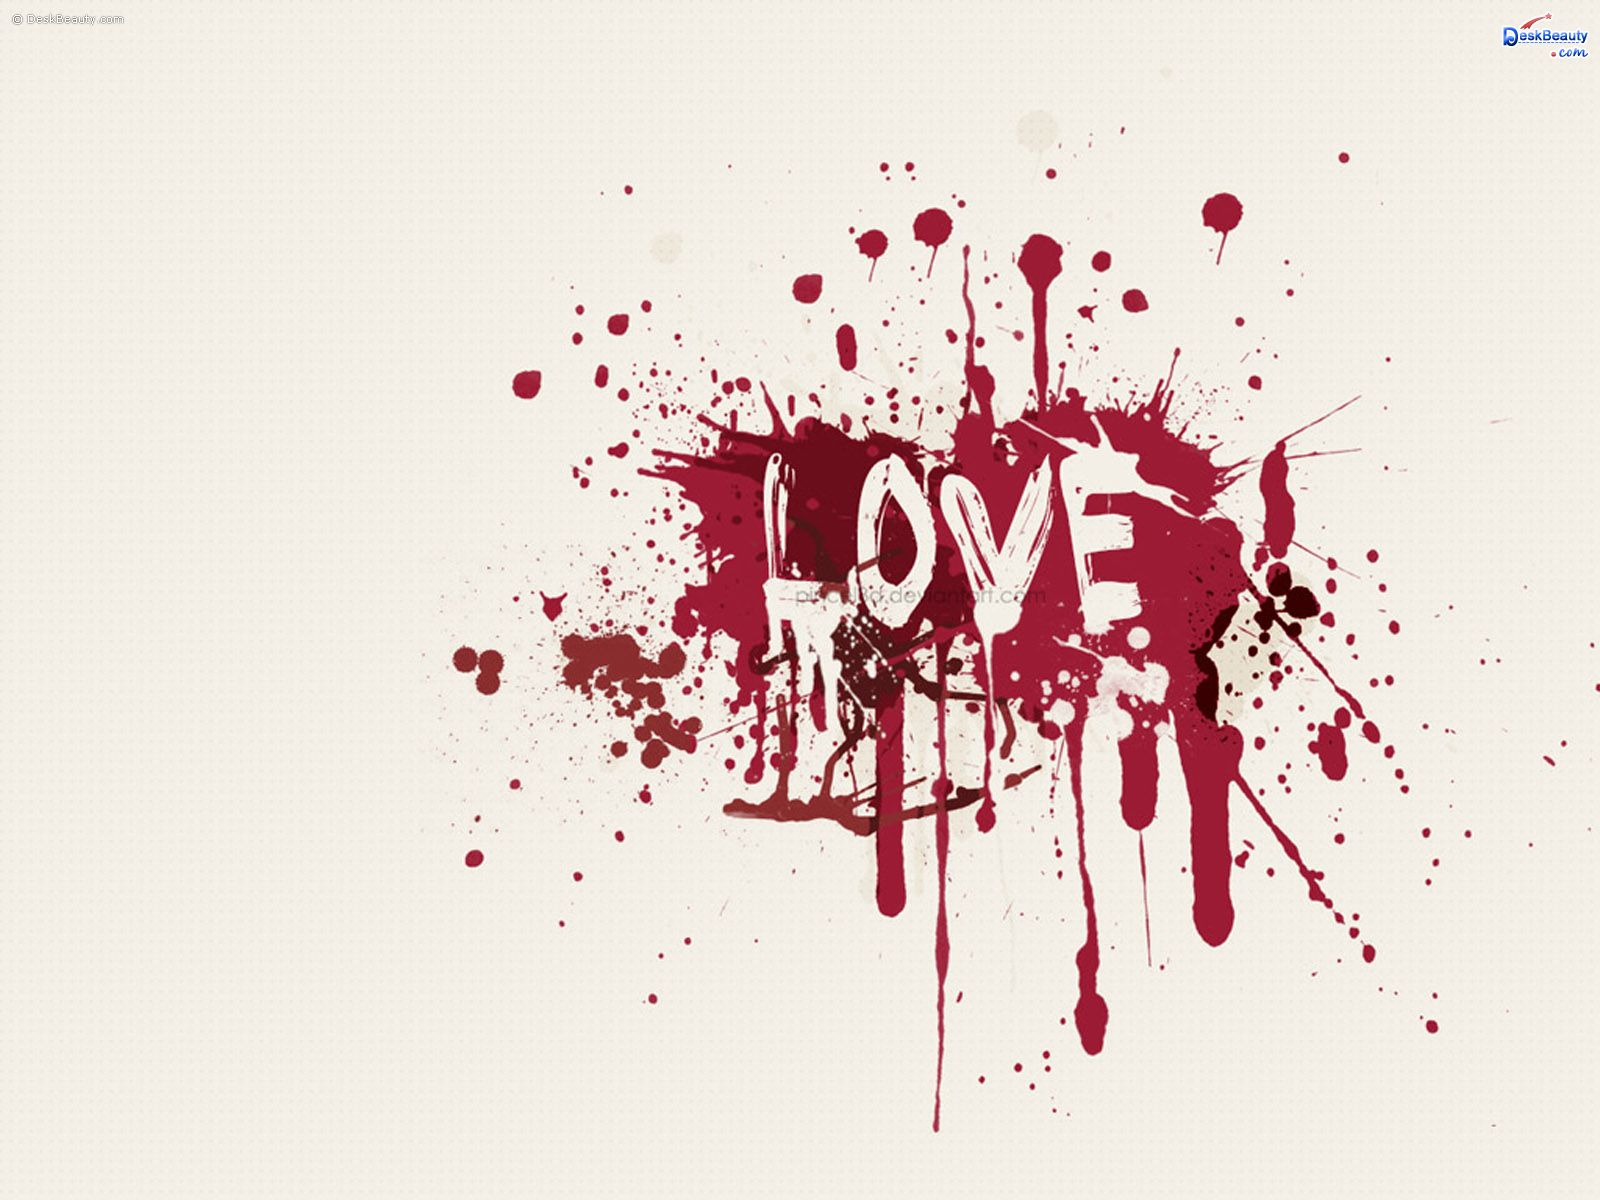 Amazing Wallpapers: Love Wallpapers HD